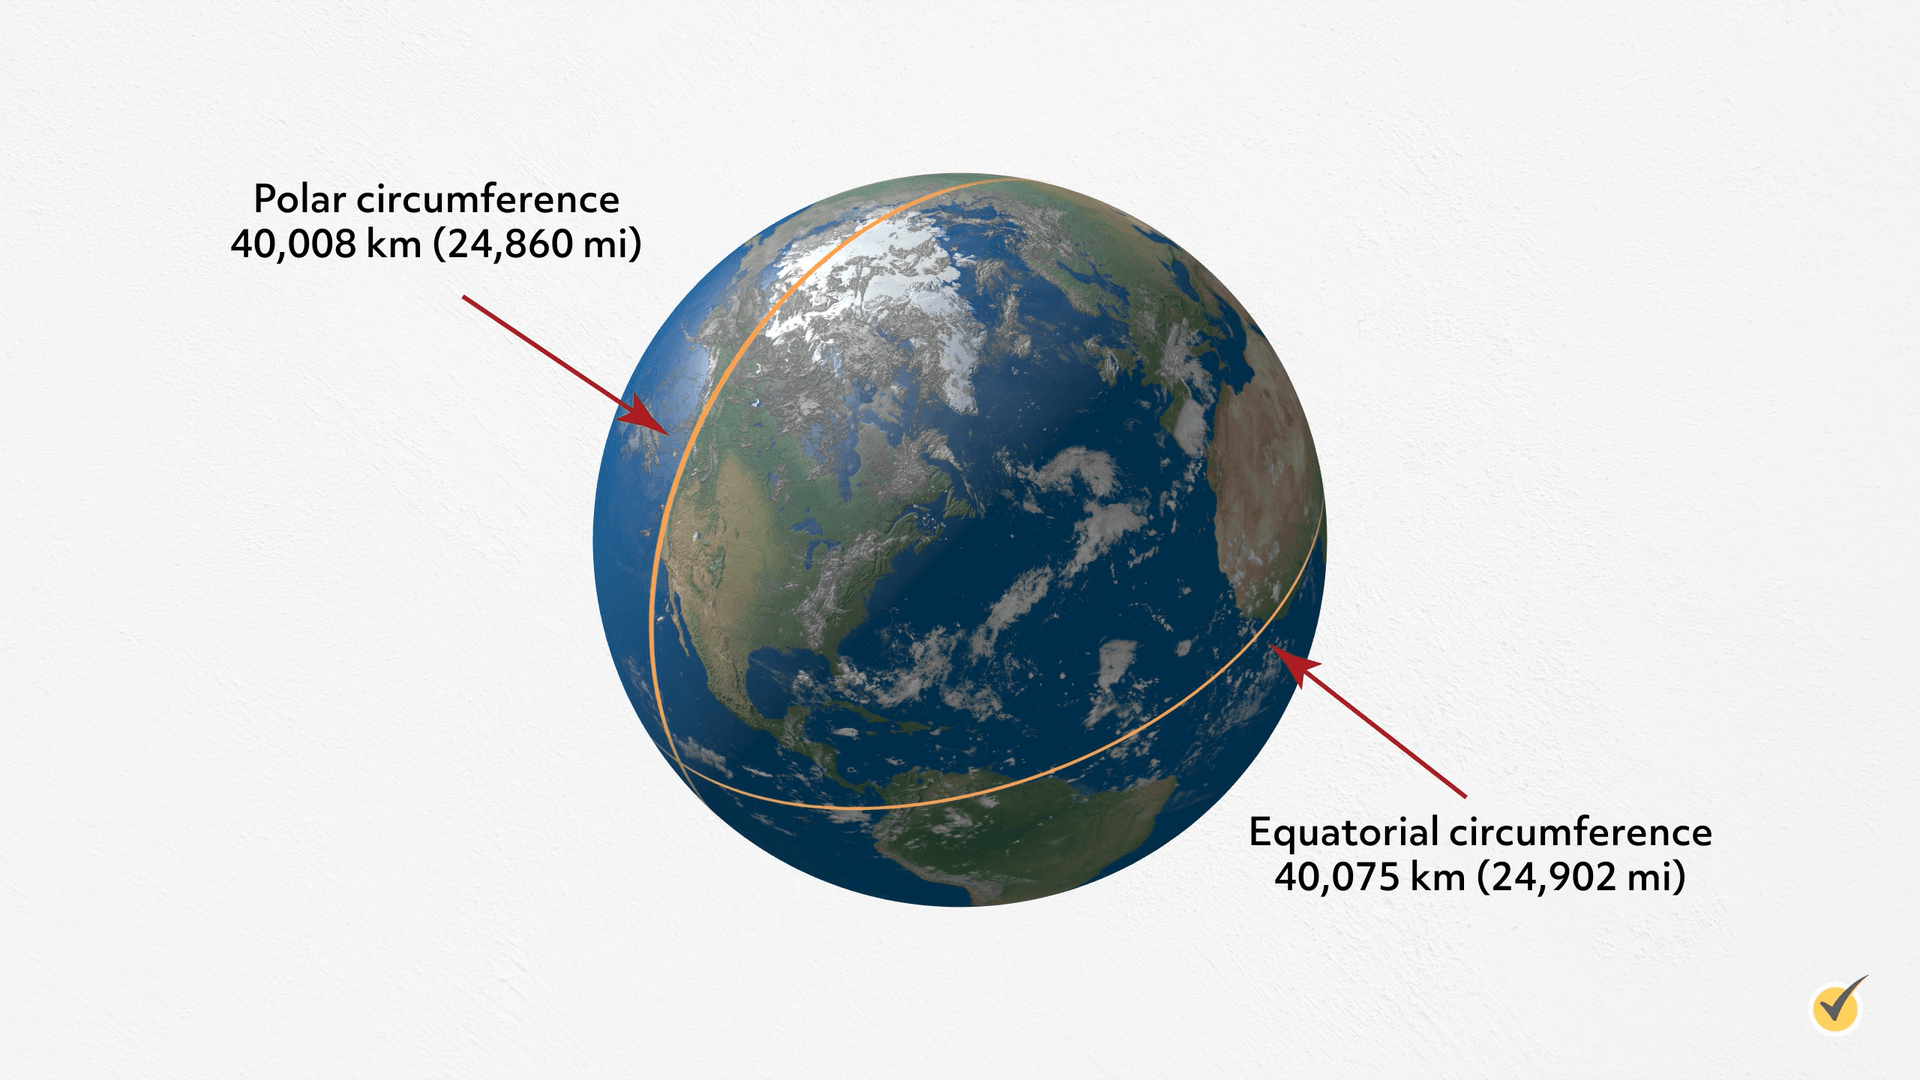 Image of the earth with polar circumference as 40,008 km, and Equatorial circumference as 40,075 km.